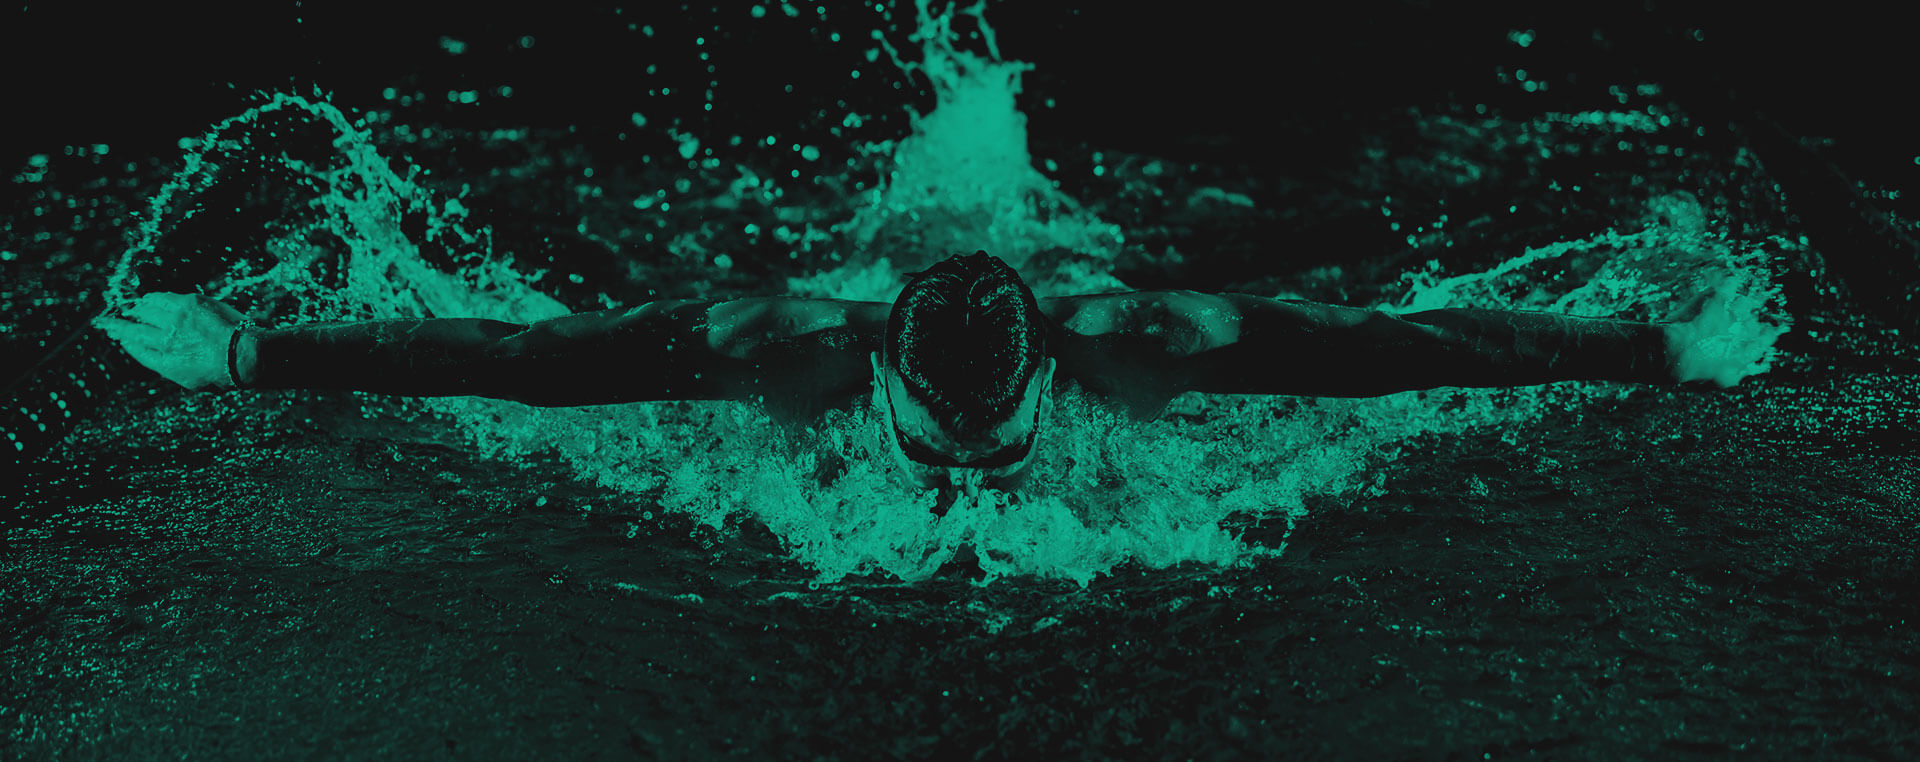 Green and black background image with a man swimming and facing the camera